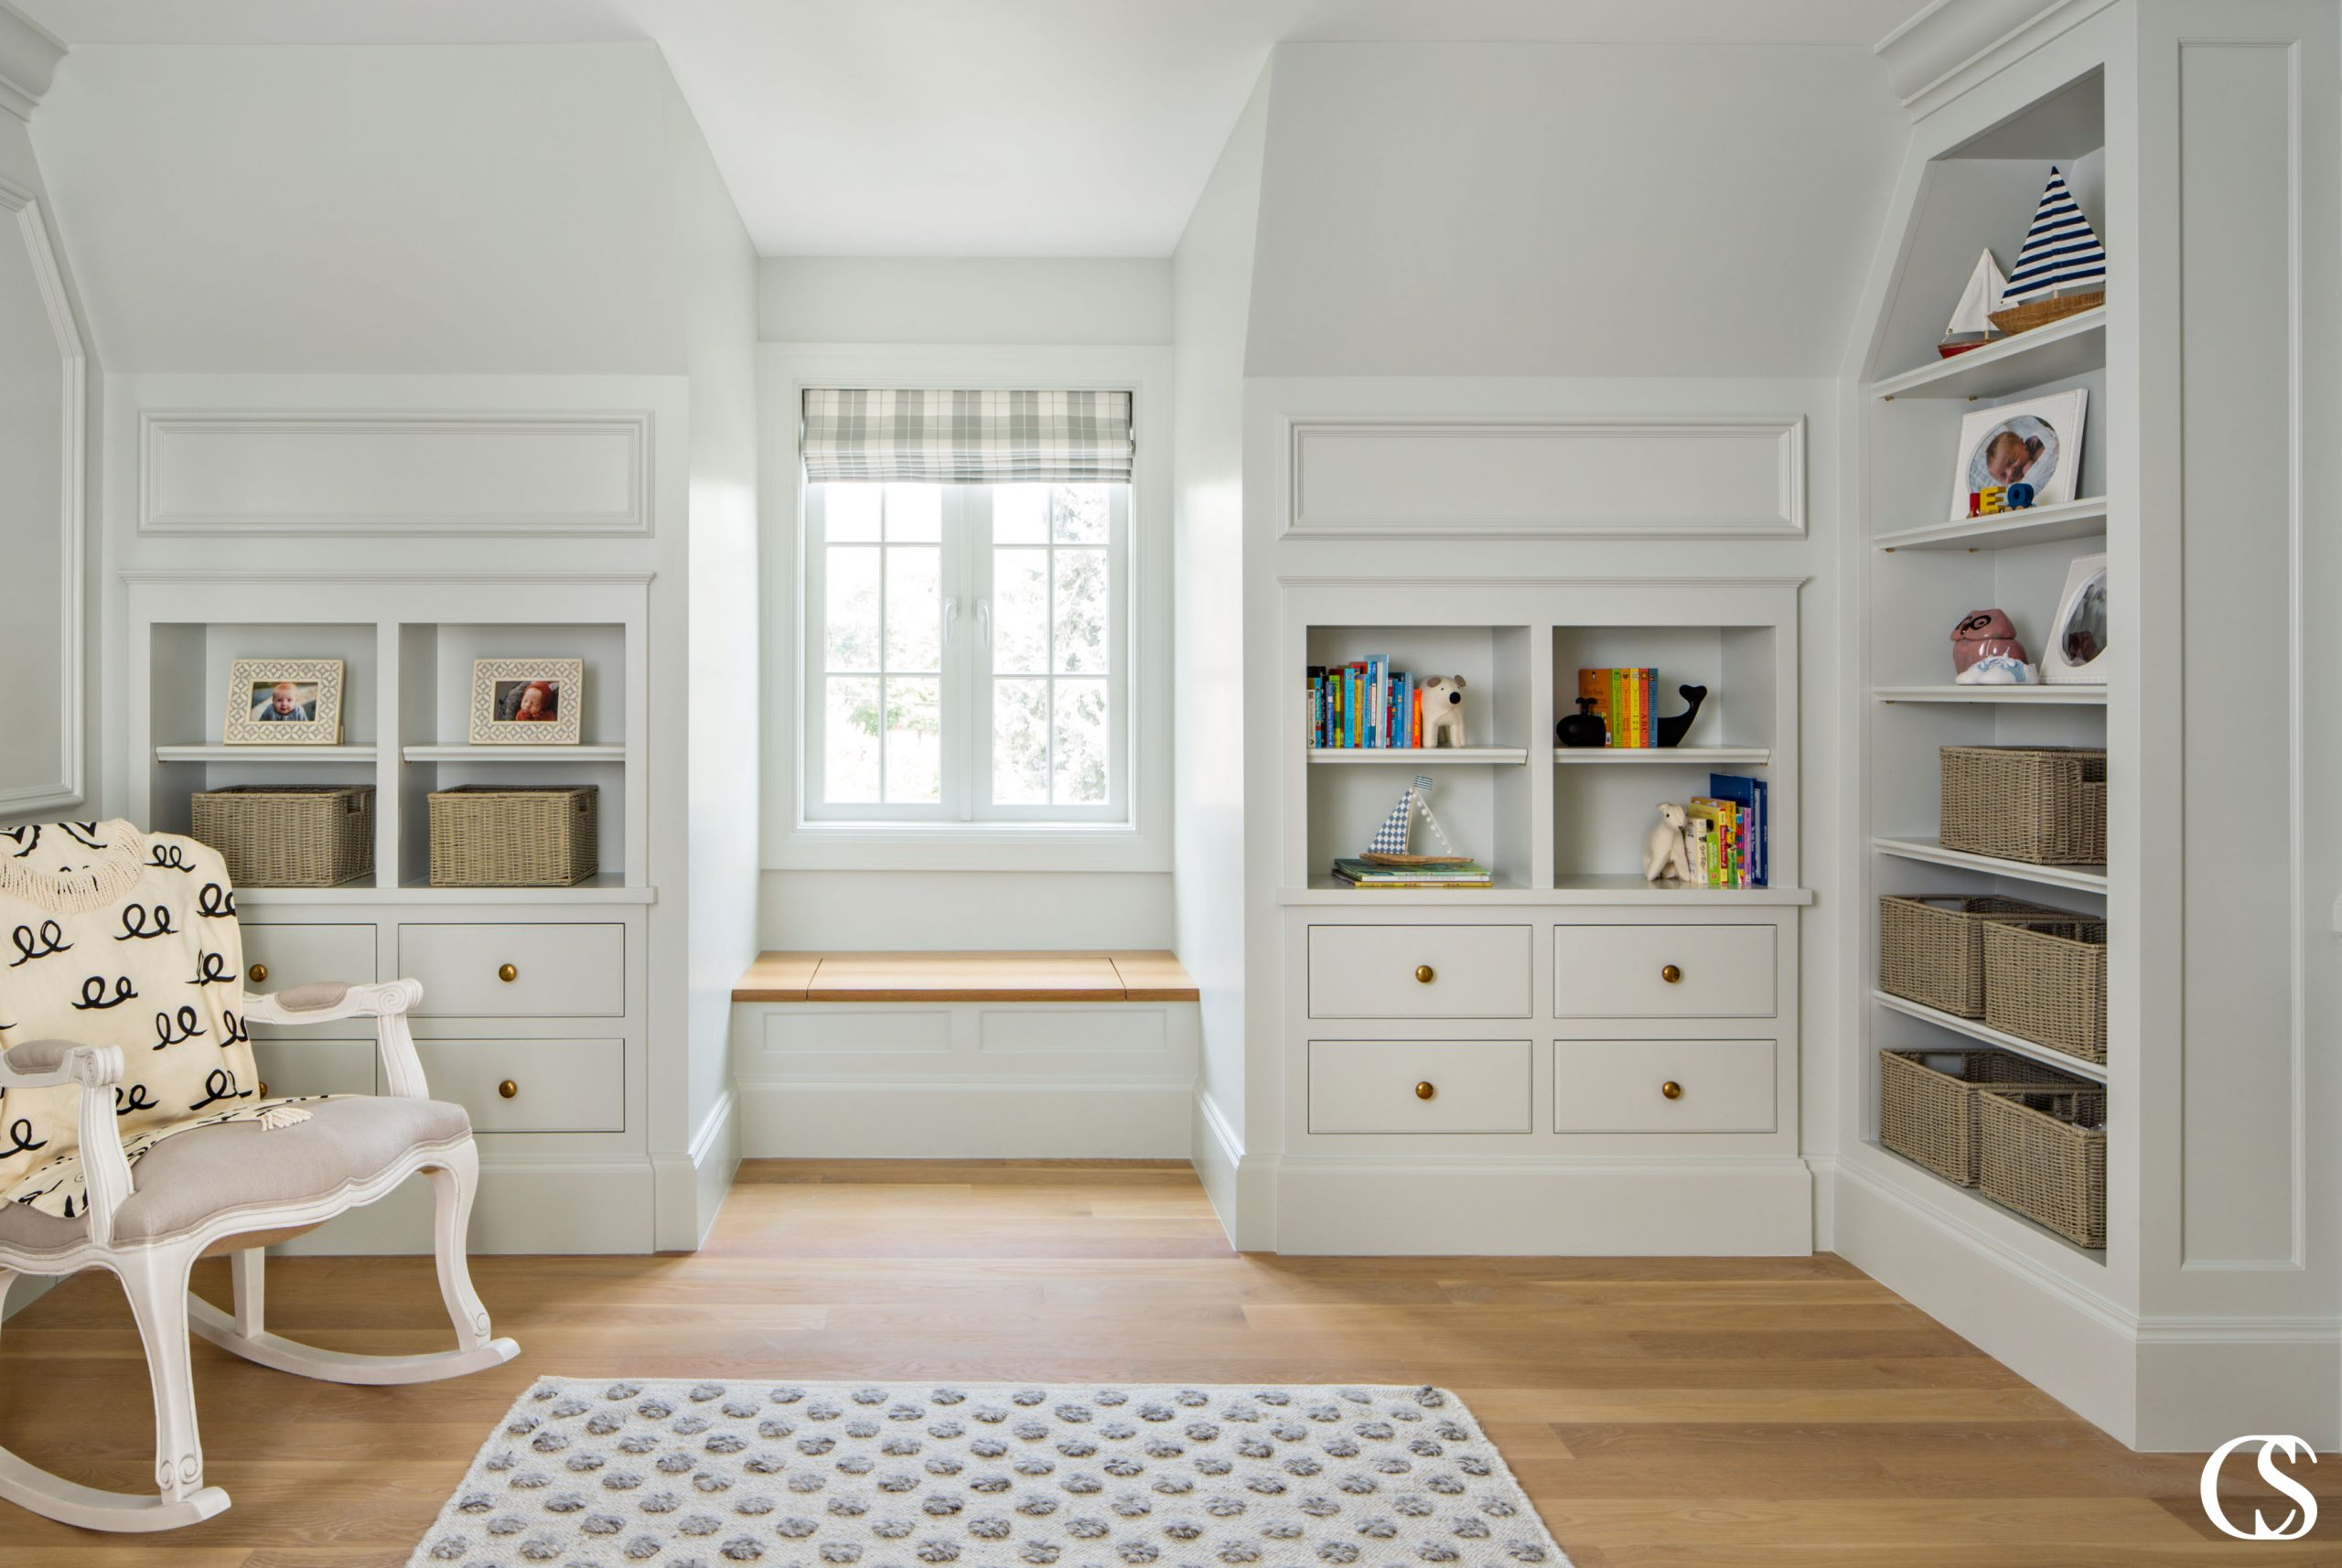 Commissioning custom cabinets for your home means fitting exactly what you need, where you want it. Like these custom nursery cabinets with their perfect tiny window seat for snuggling up and reading together.